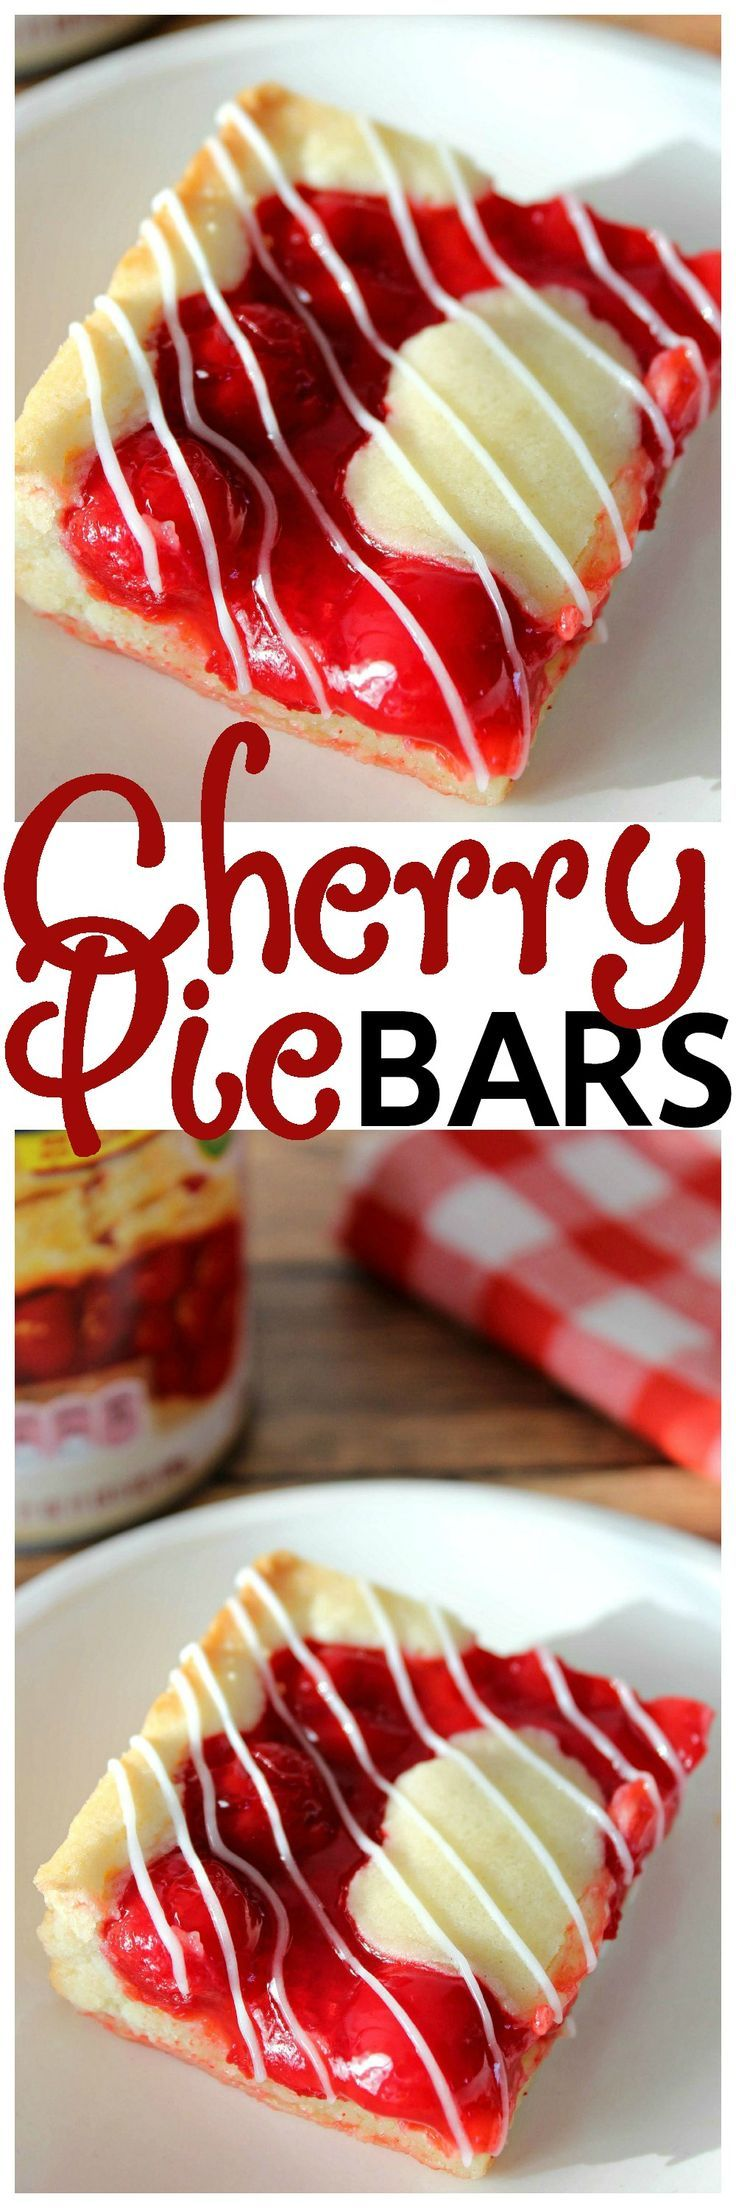 Buttery pie crust topped cherries and a sweet glaze. Yummy bar recipe.